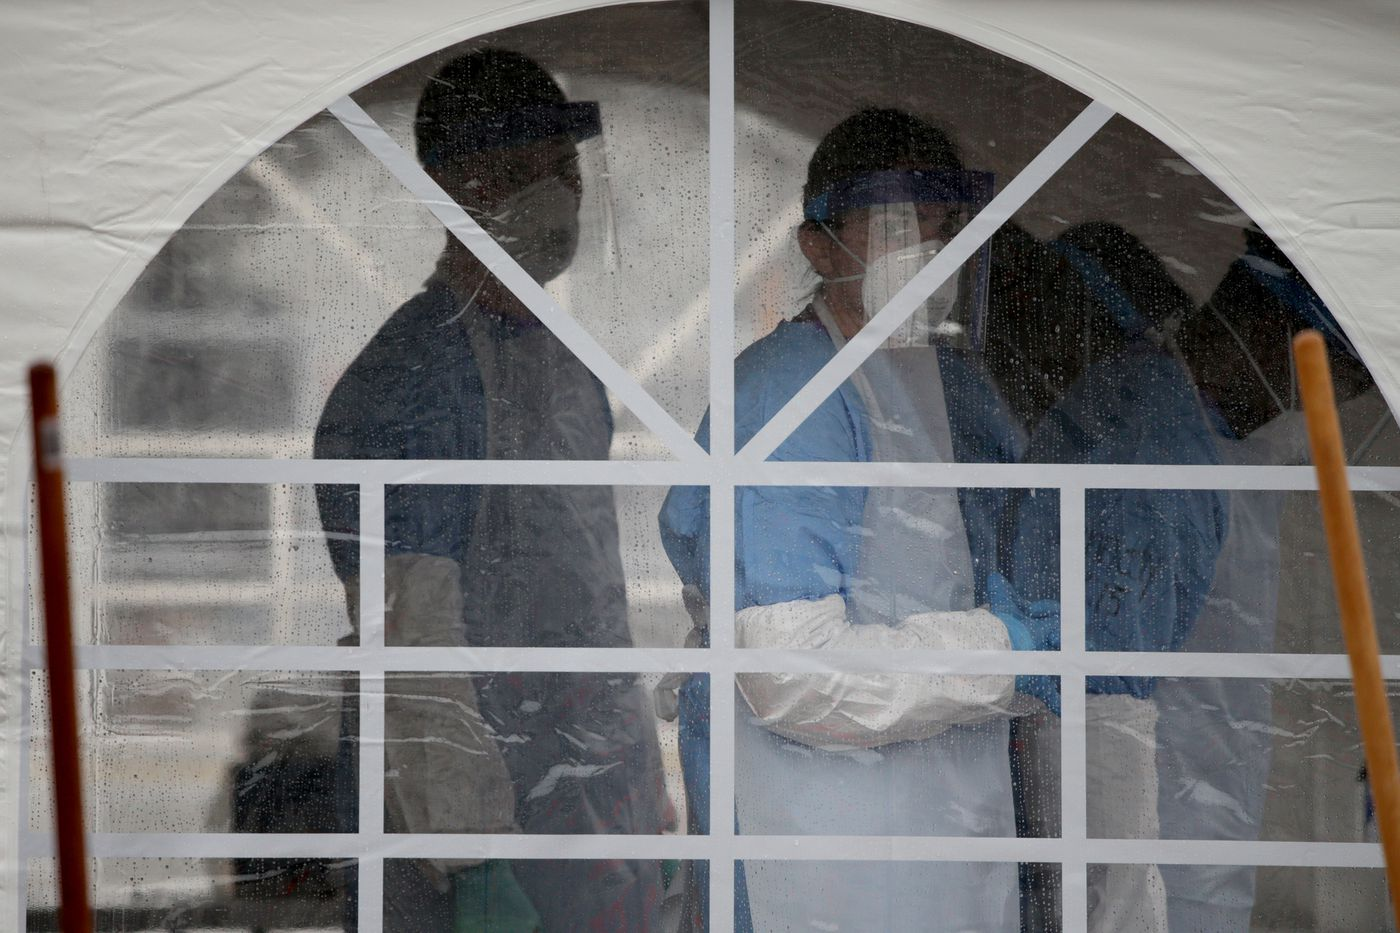 Medical workers wait in a tent at the coronavirus testing site for first responders and healthcare workers in the parking lot of the Rite Aid on the 7400 block of Ogontz Avenue in Philadelphia, PA on March 23, 2020.